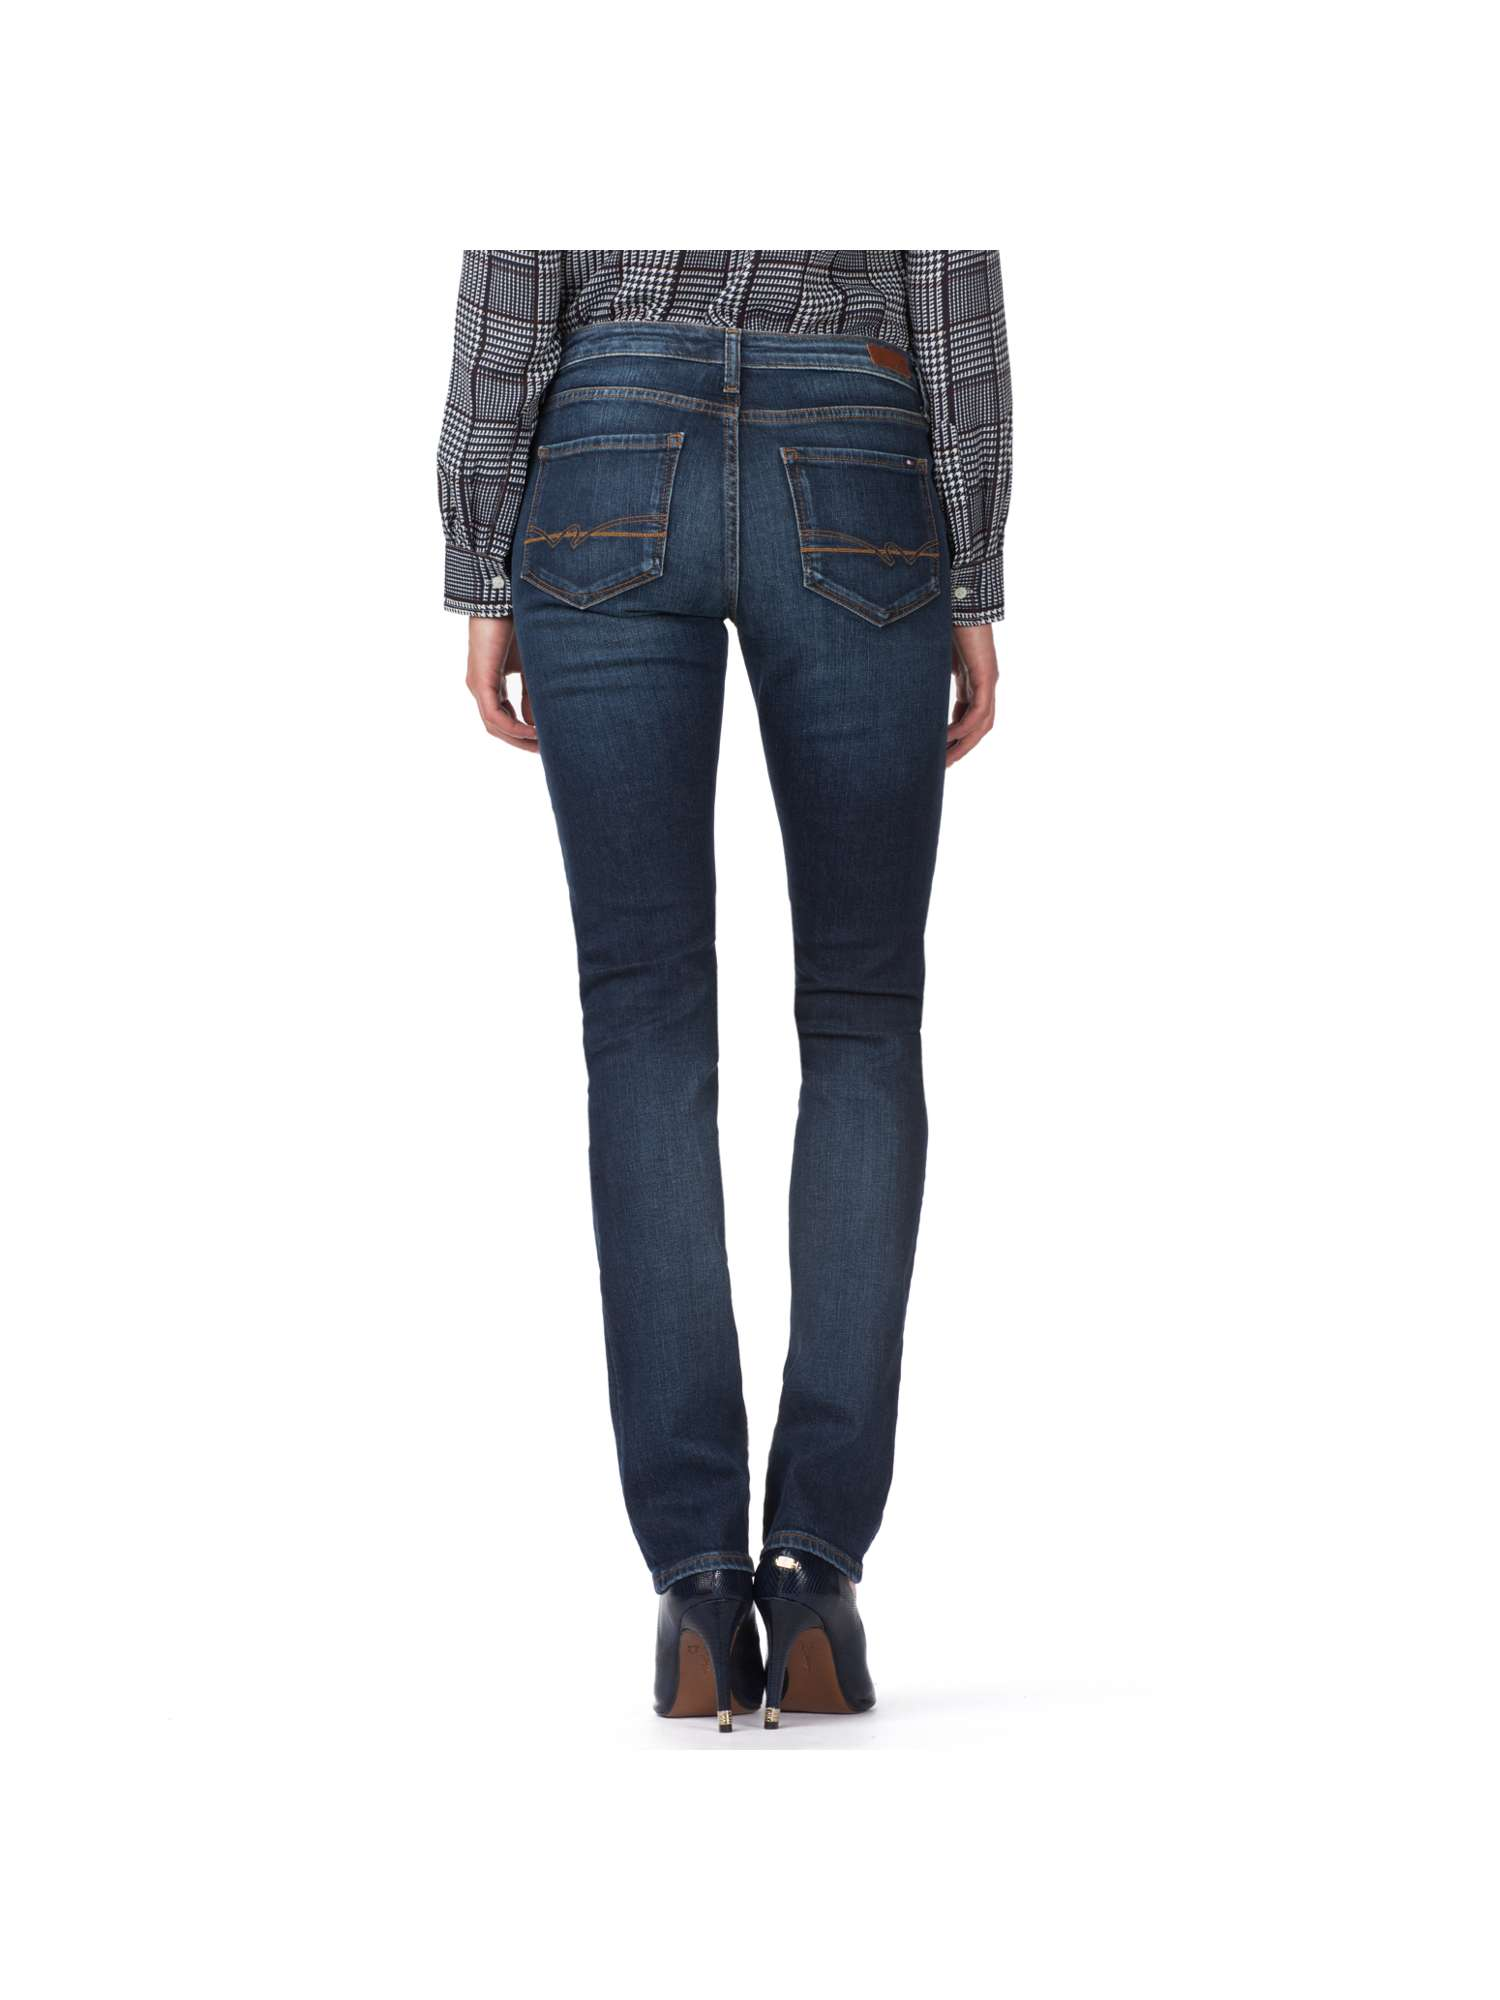 Tommy Hilfiger Absolute Jeans Rome Blue rZFOqrw